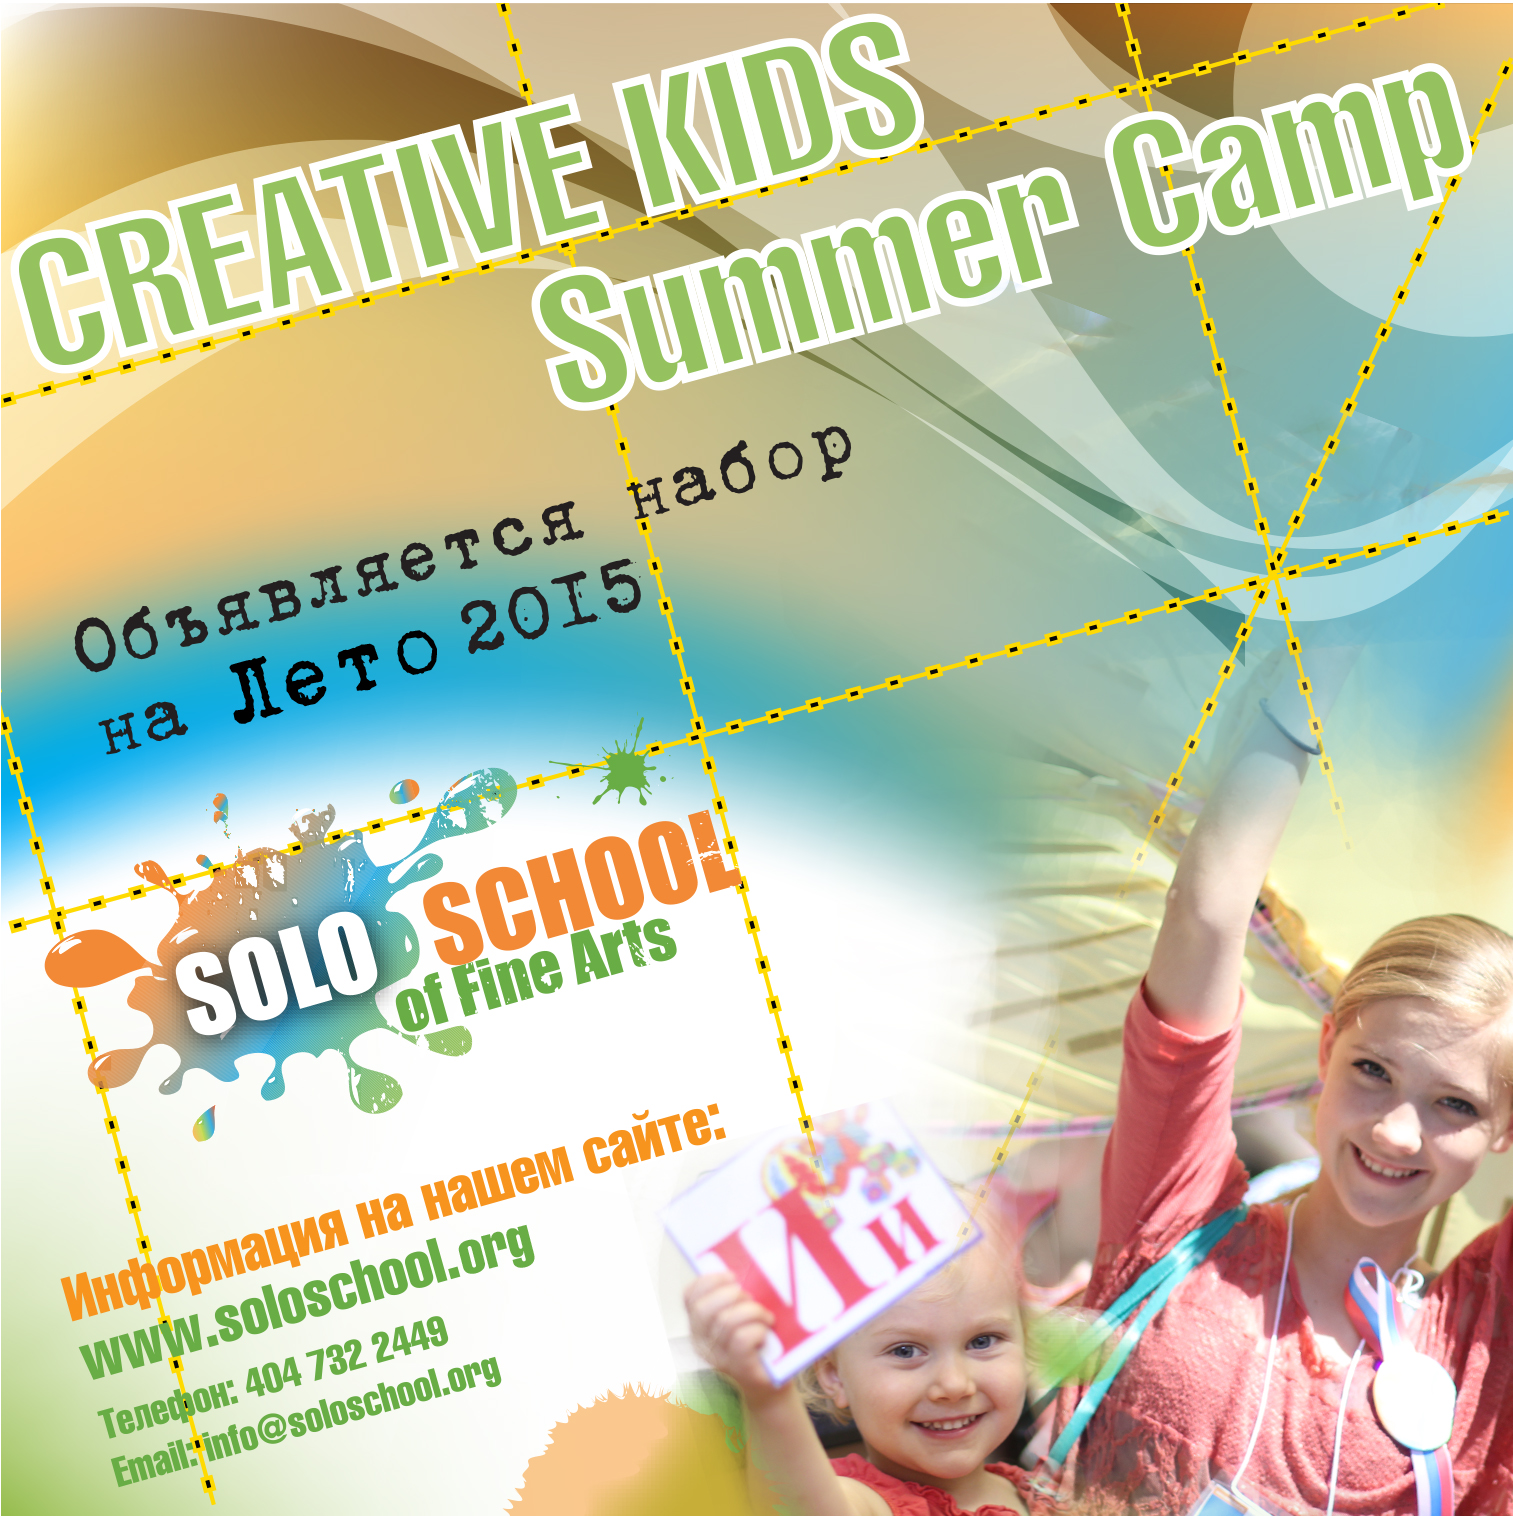 Creative Kids Summer Camp